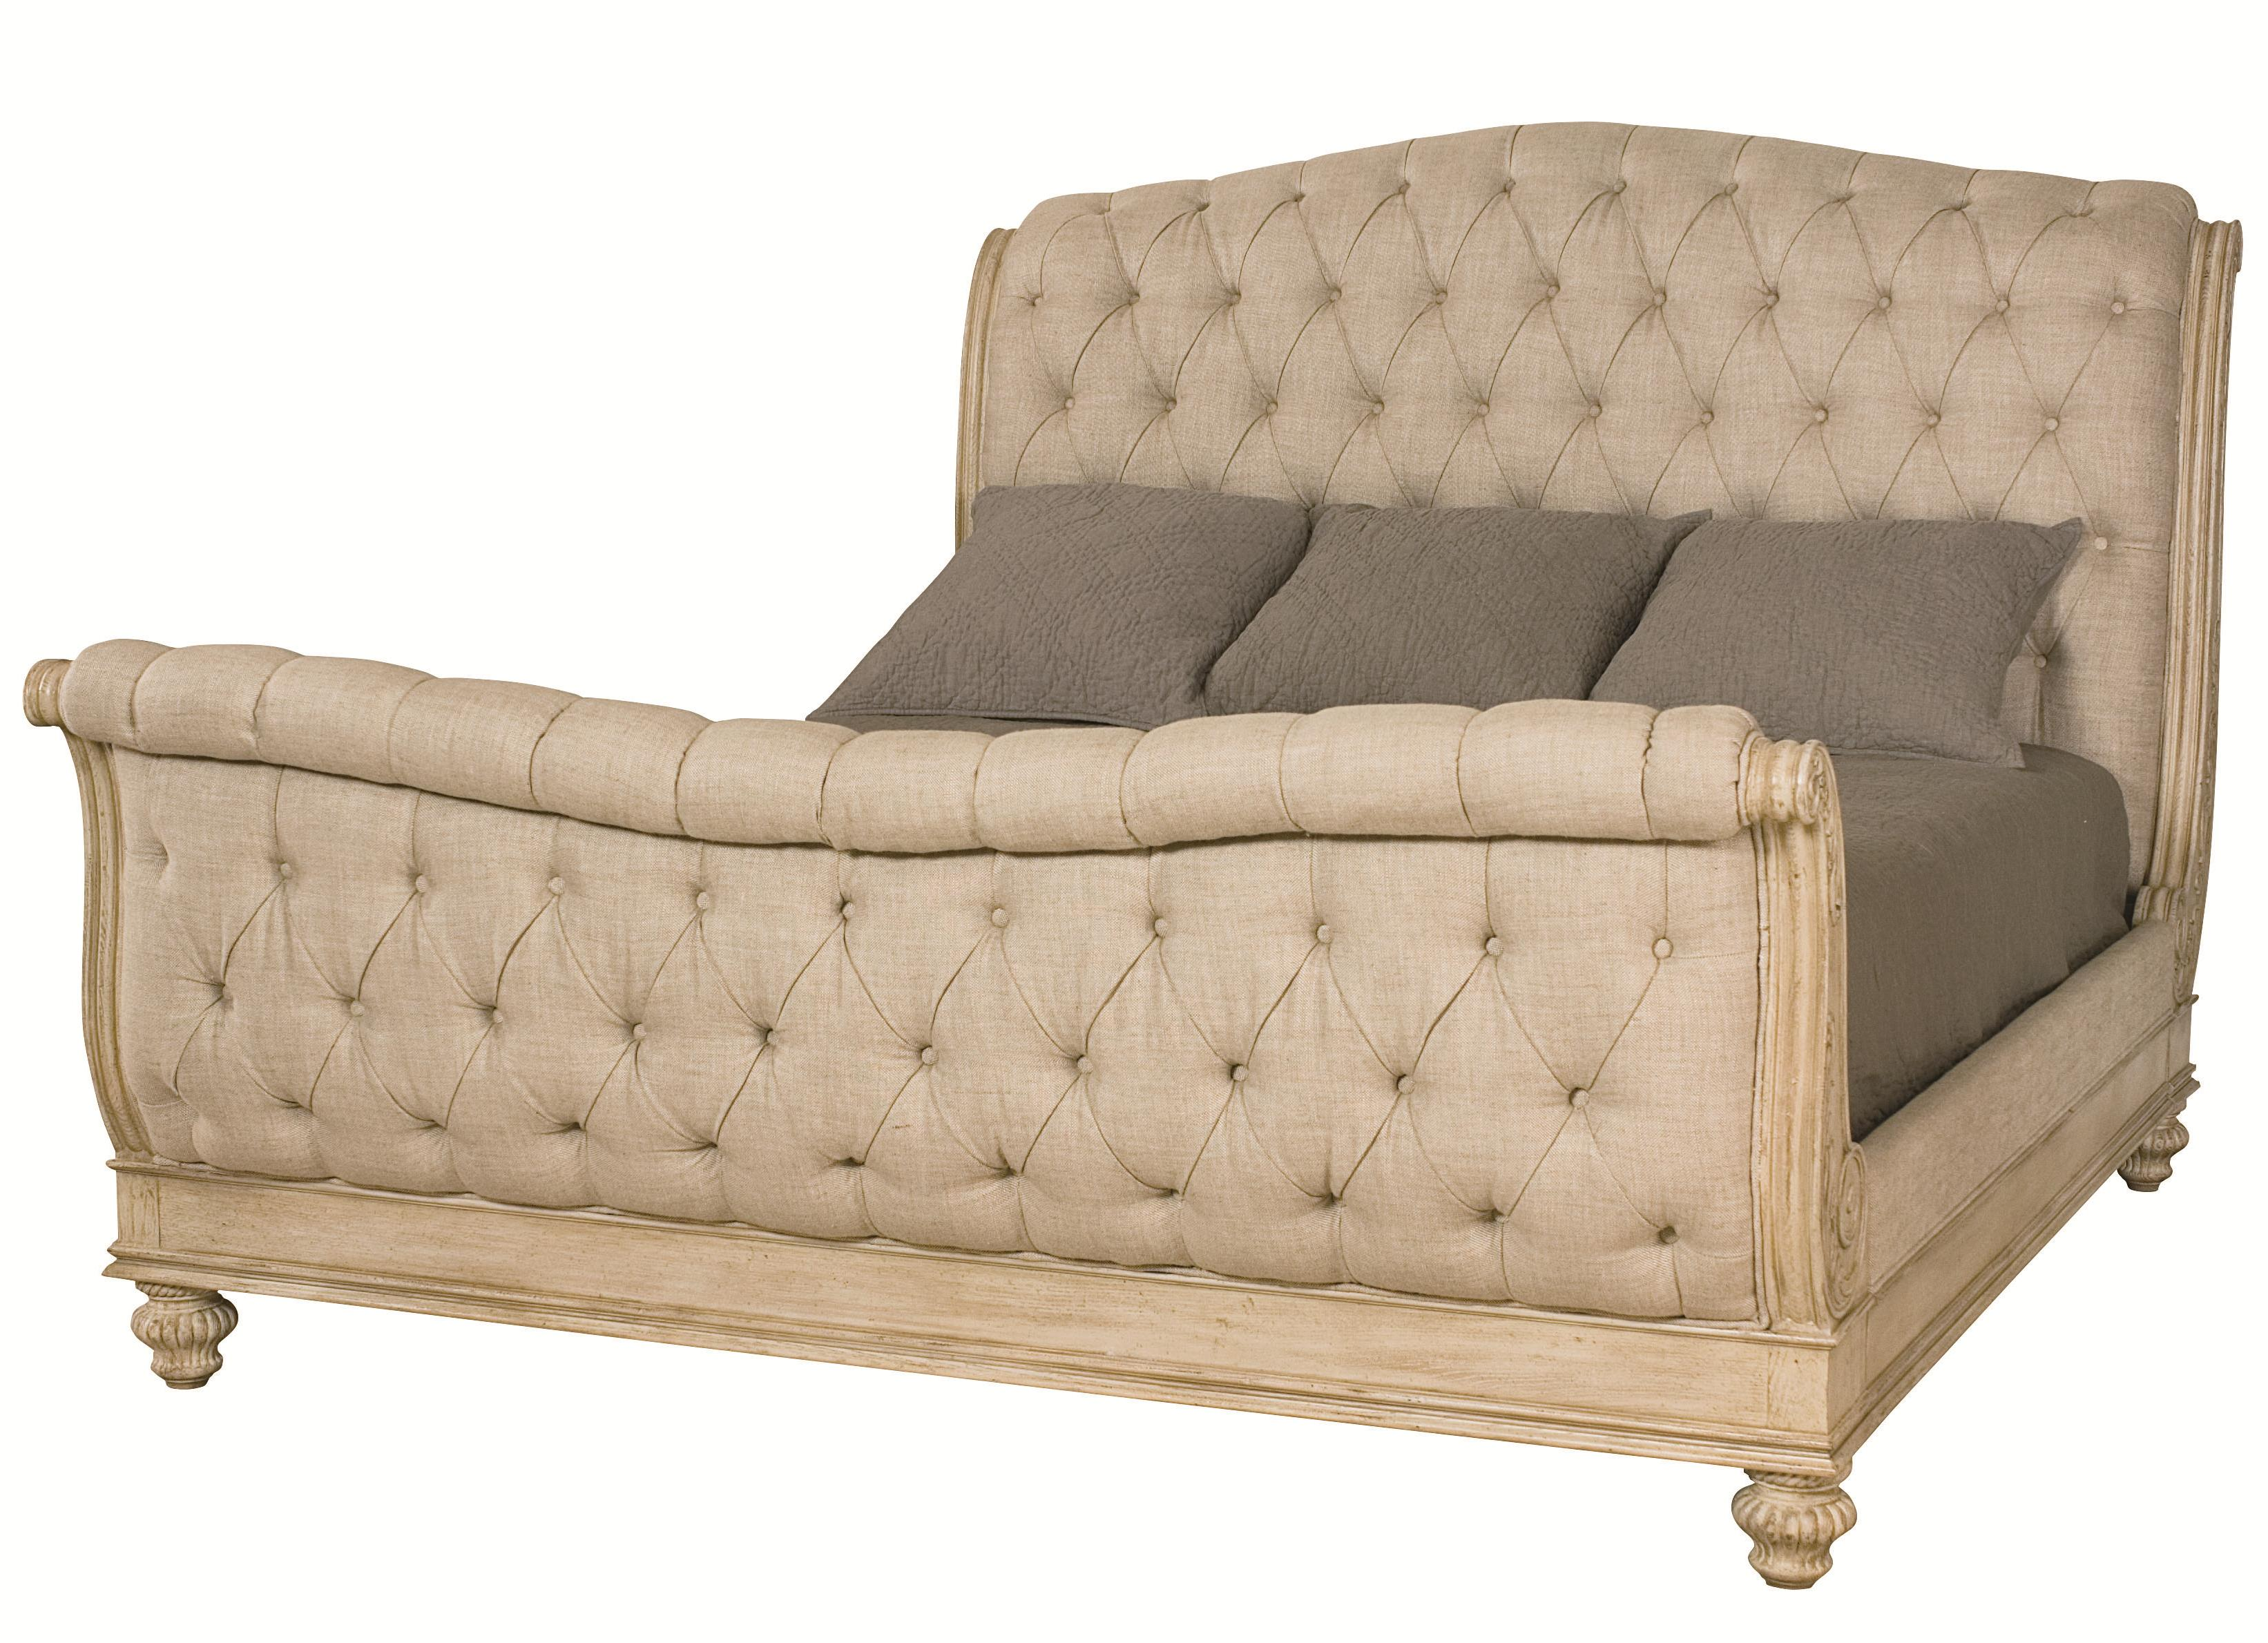 American Drew Jessica McClintock Home - The Boutique Collection King Sleigh Bed - Item Number: 217-306WR